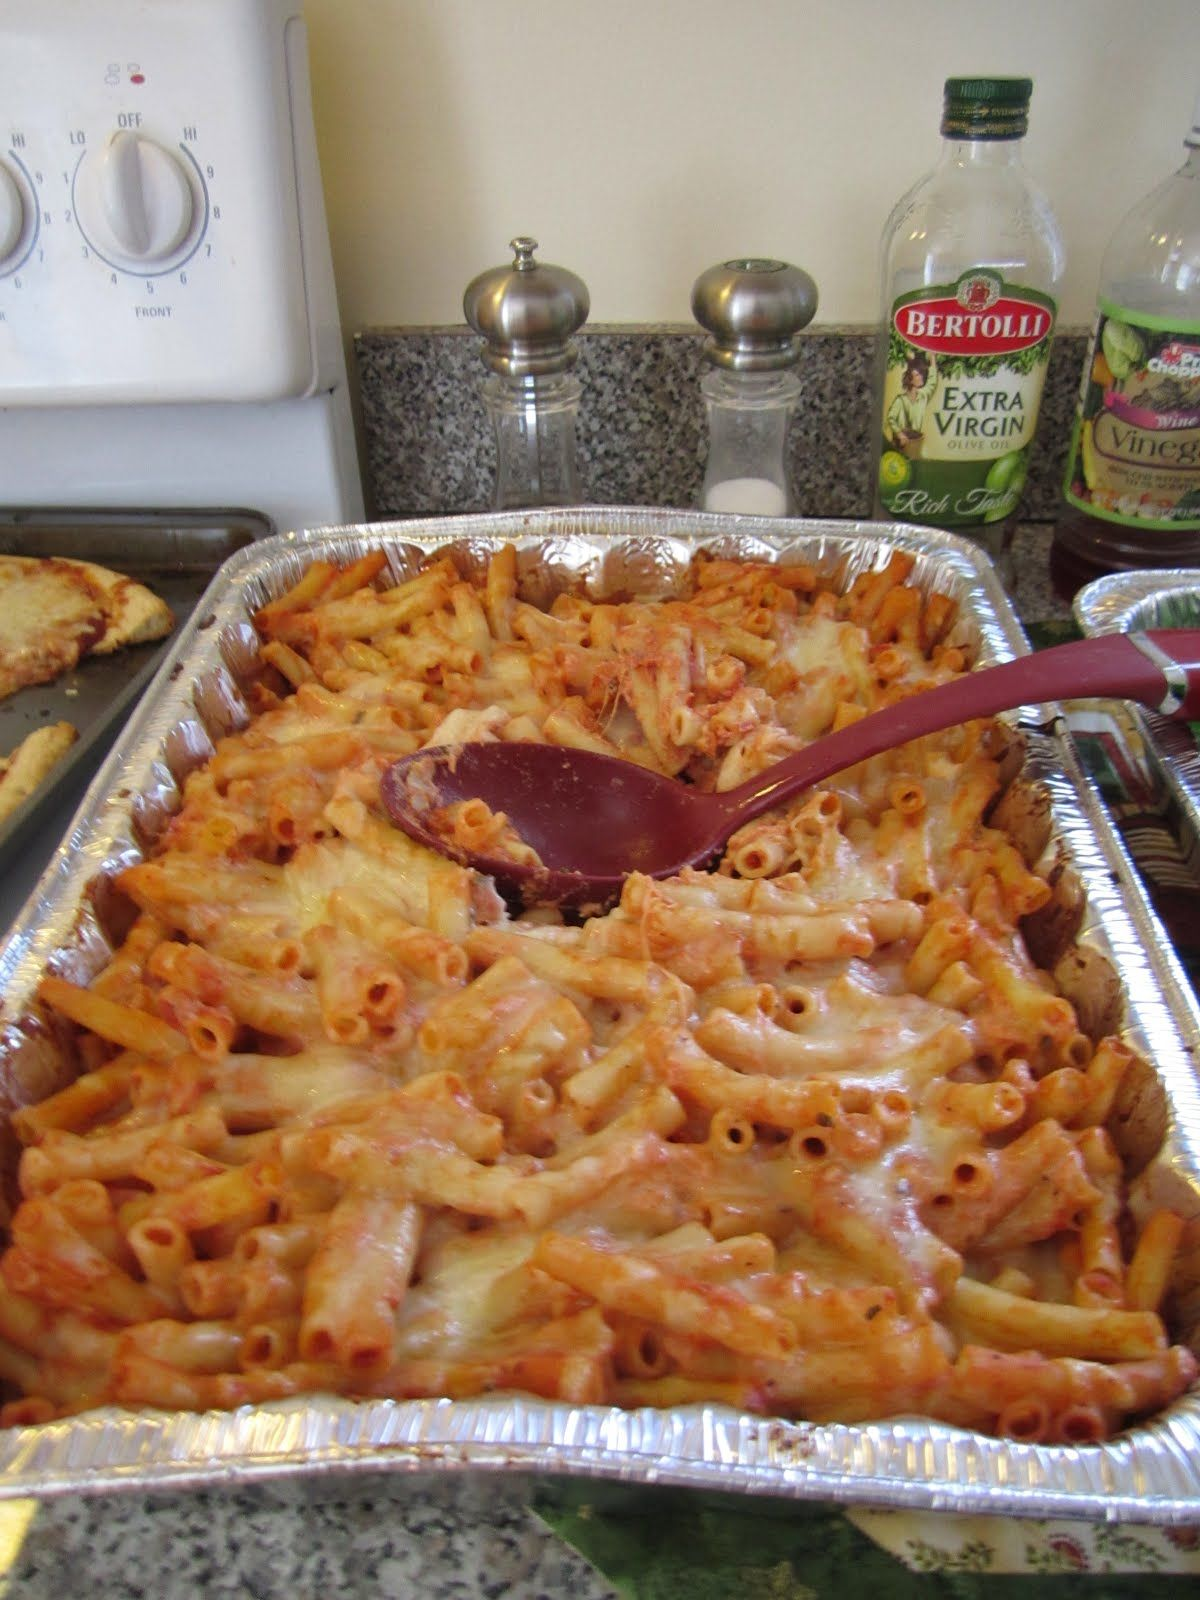 Easy and cheap menu for a quick get together: Baked ziti, pizza ...